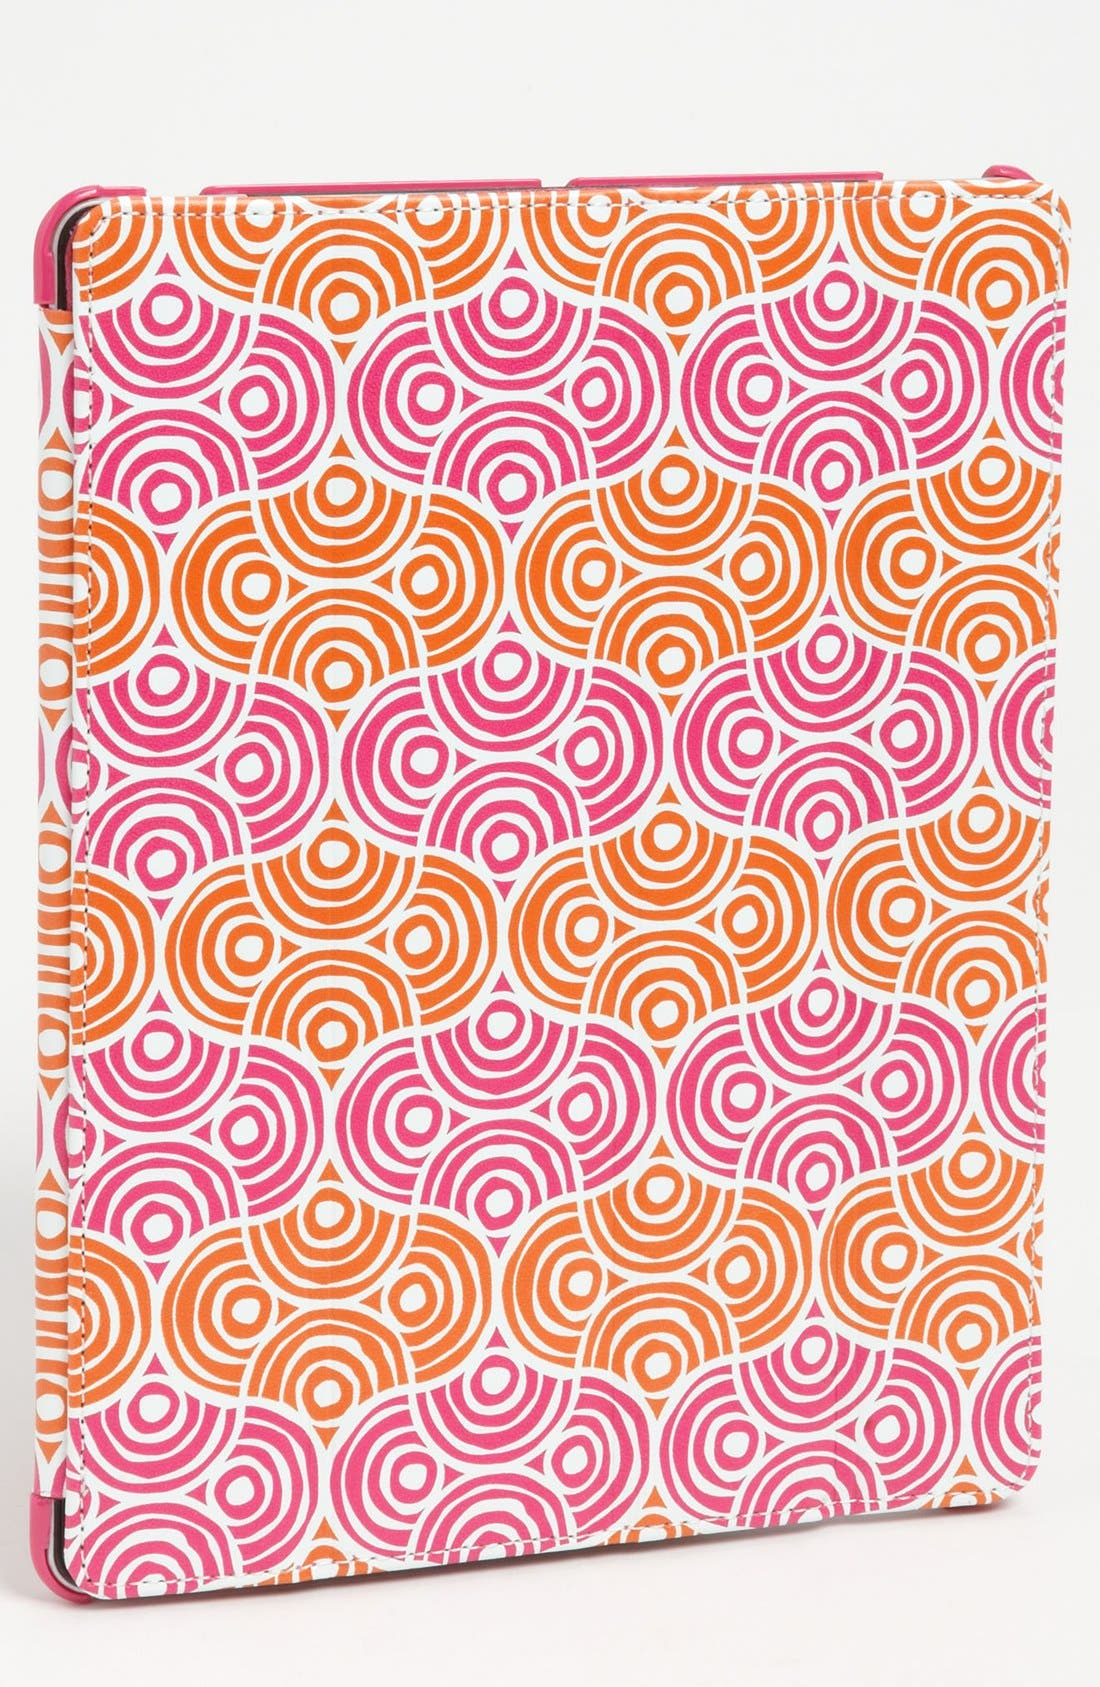 Alternate Image 1 Selected - Jonathan Adler 'Circle Ornaments' iPad 2 & 3 Case